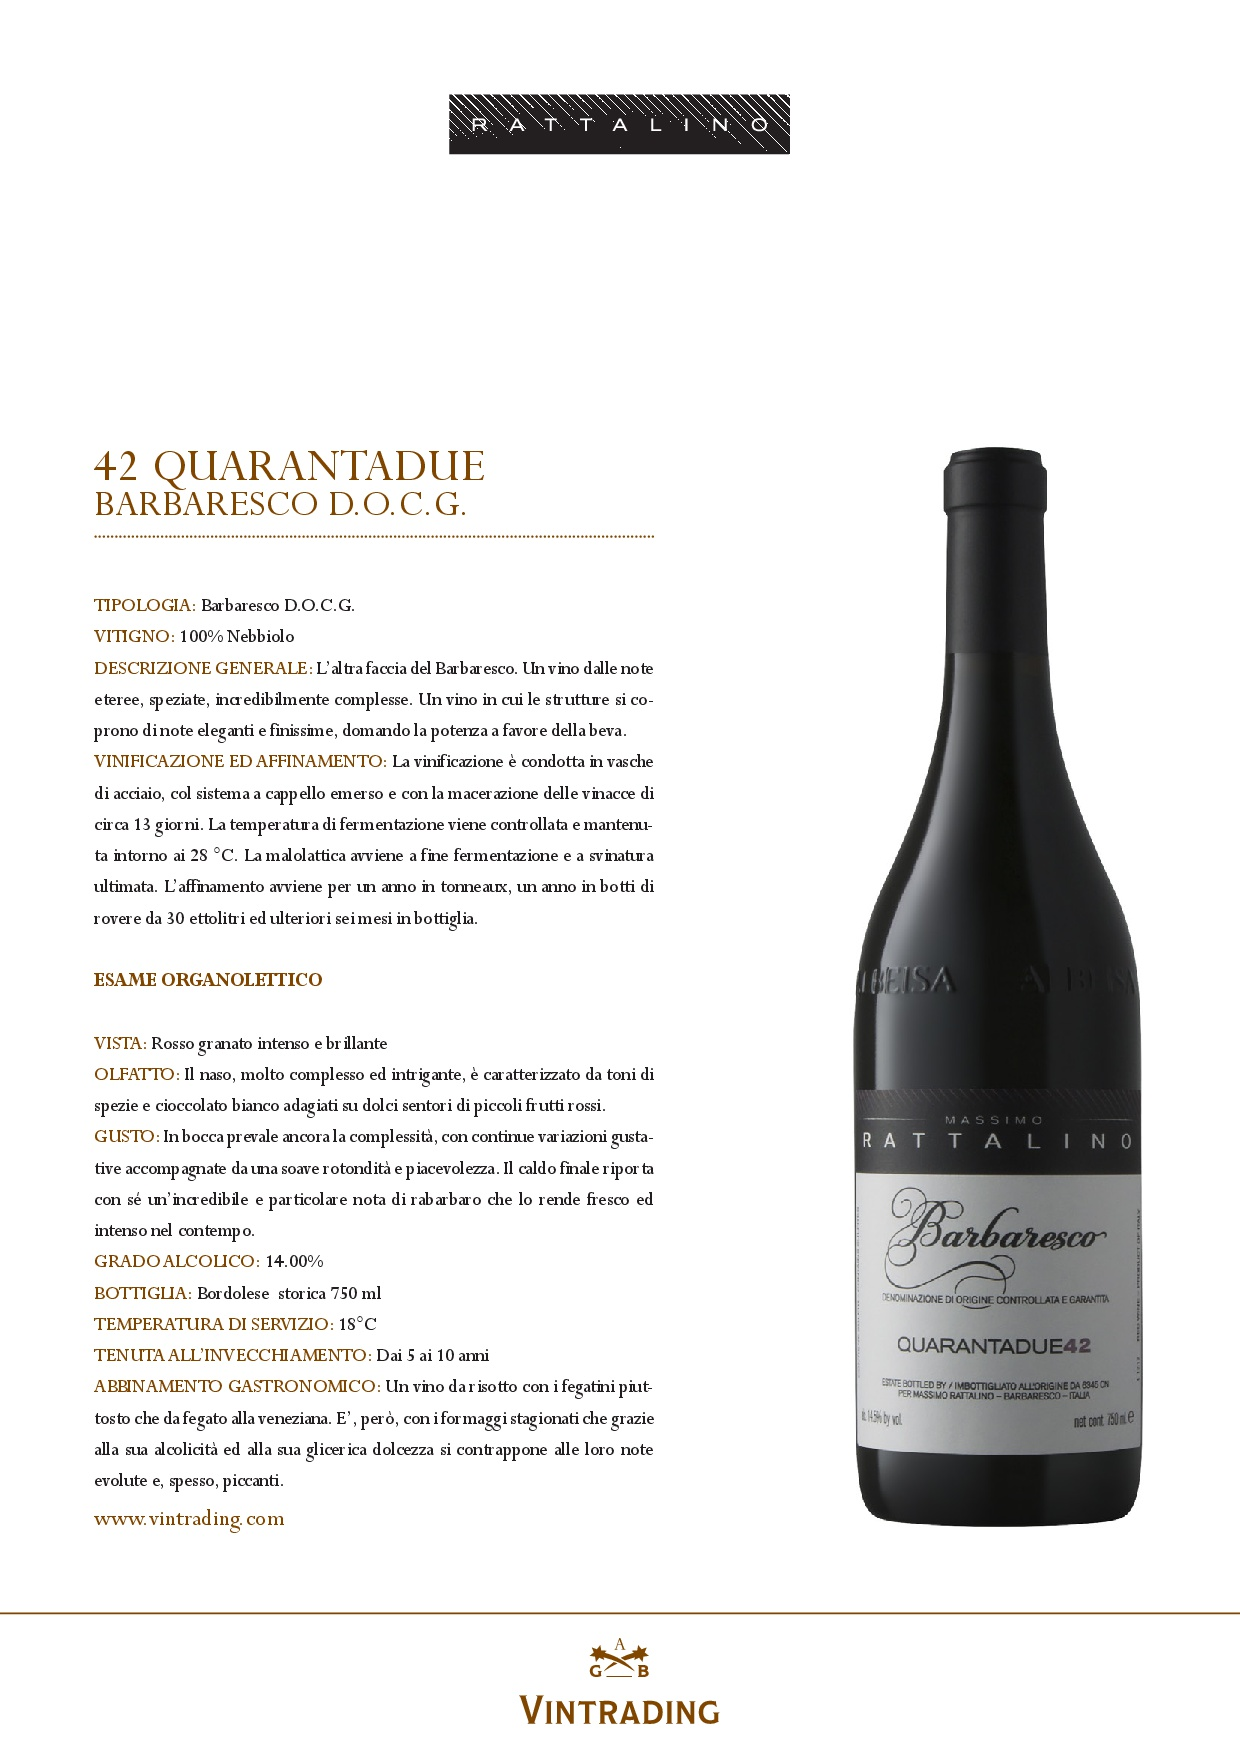 Rattalino barbaresco food drink consulting for Food bar consult